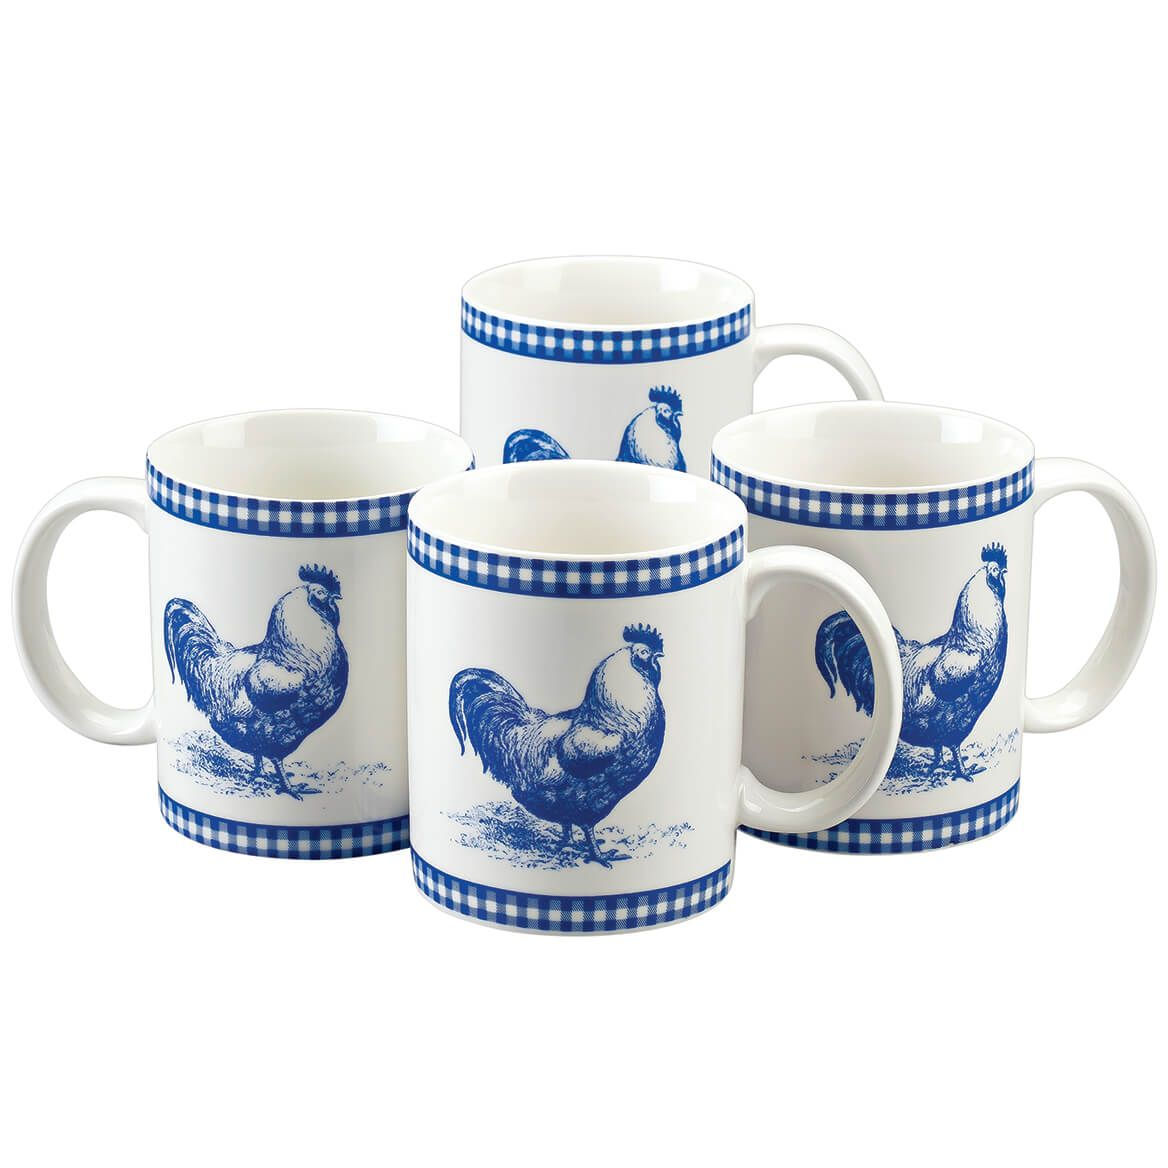 Blue Rooster Mugs, Set of 4 by William Roberts-369665